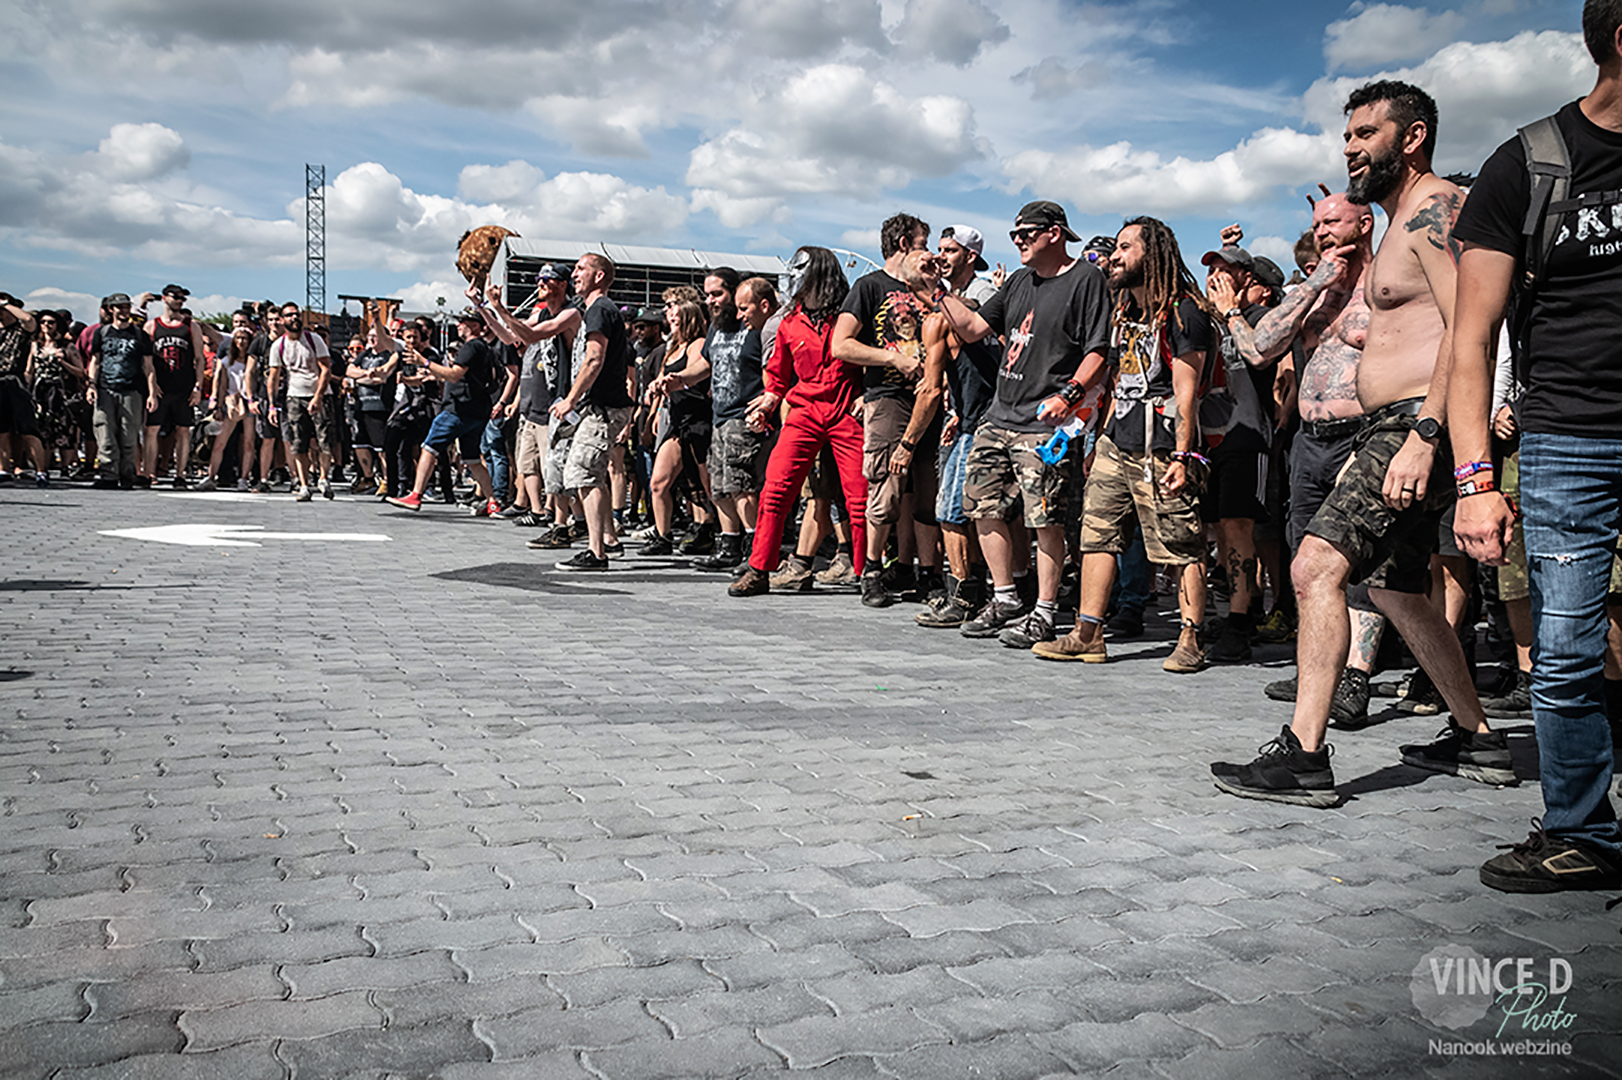 nanook-webzine-festival-hellfest-photos-concerts-report-Driancourt_vincedphoto_KNOTFEST_Sick-of-it-WALL-OF-DEATH